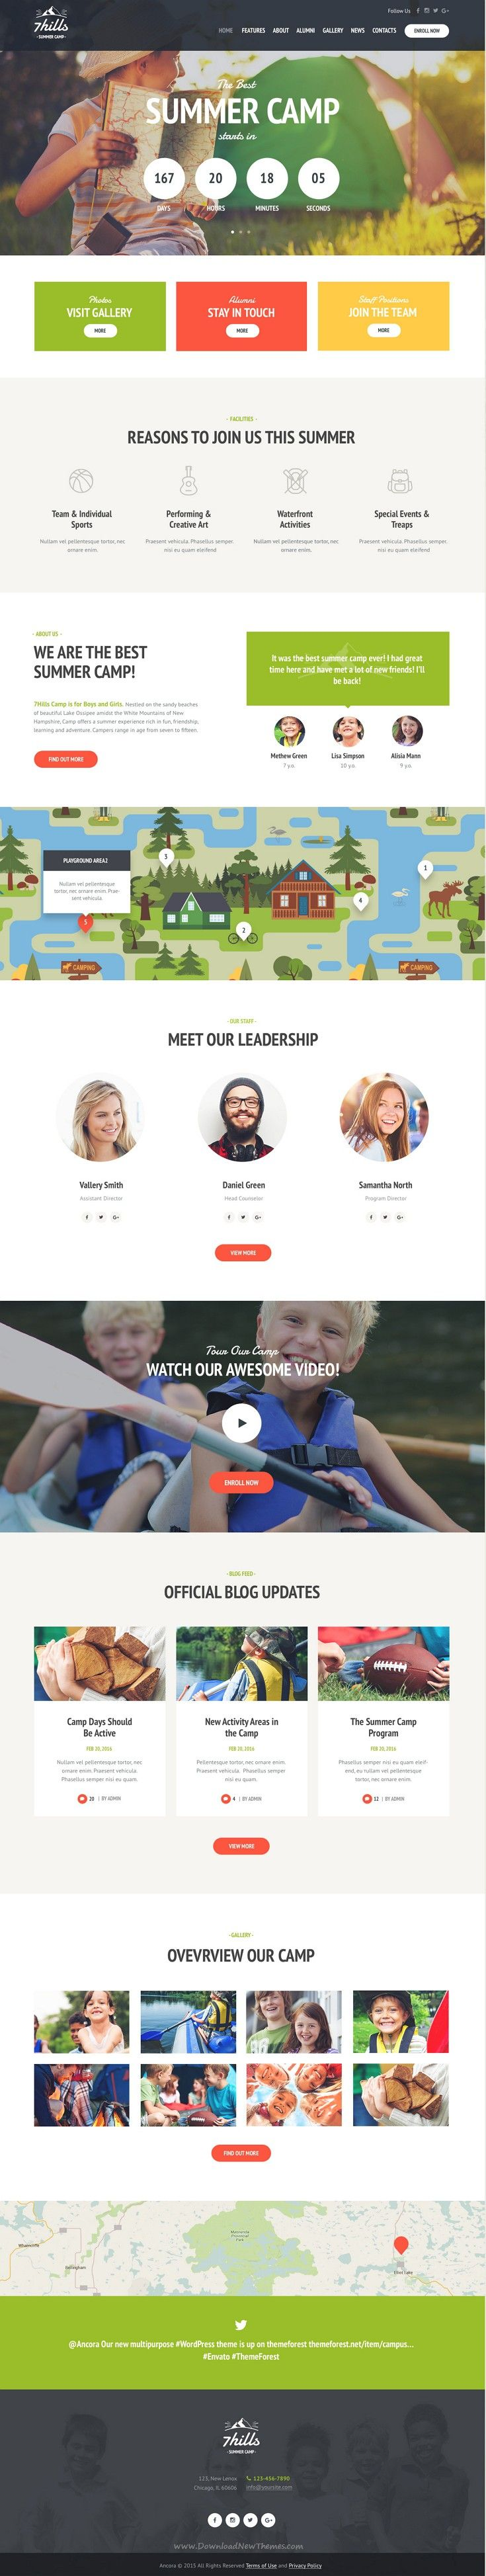 SevenHills is a WordPress theme with minimal design best suitable for Summer #Camp or Outdoors #Activities #website. Download Now!